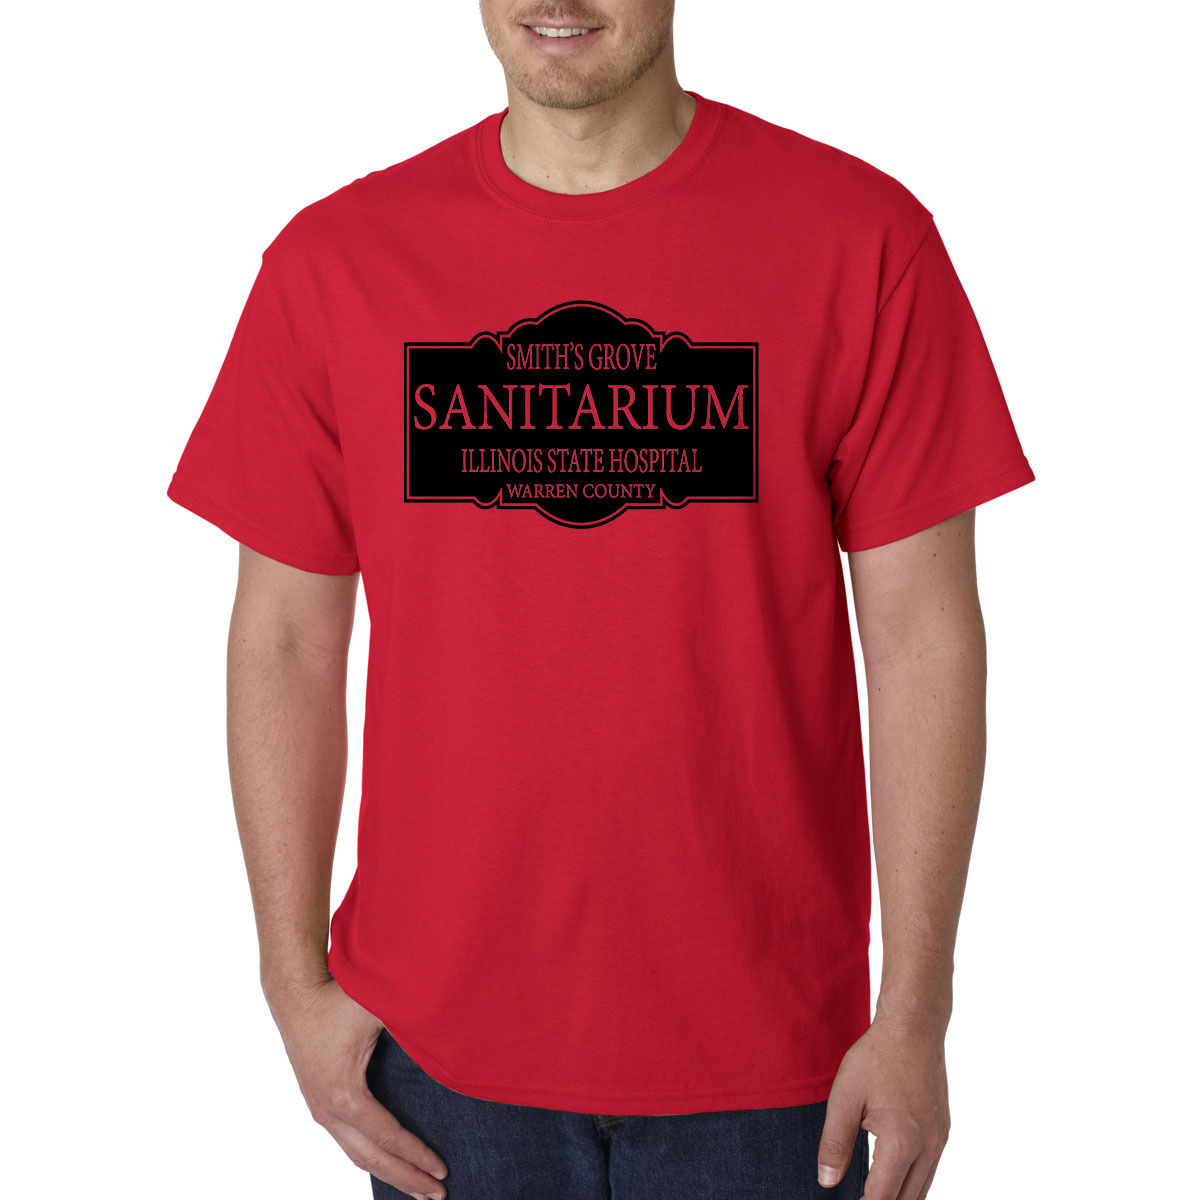 Smiths Grove Sanitarium T-Shirt - HALLOWEEN Michael Myers Mental Hospital Movie Cheap Sale 100 % Cotton T Shirts For Boys